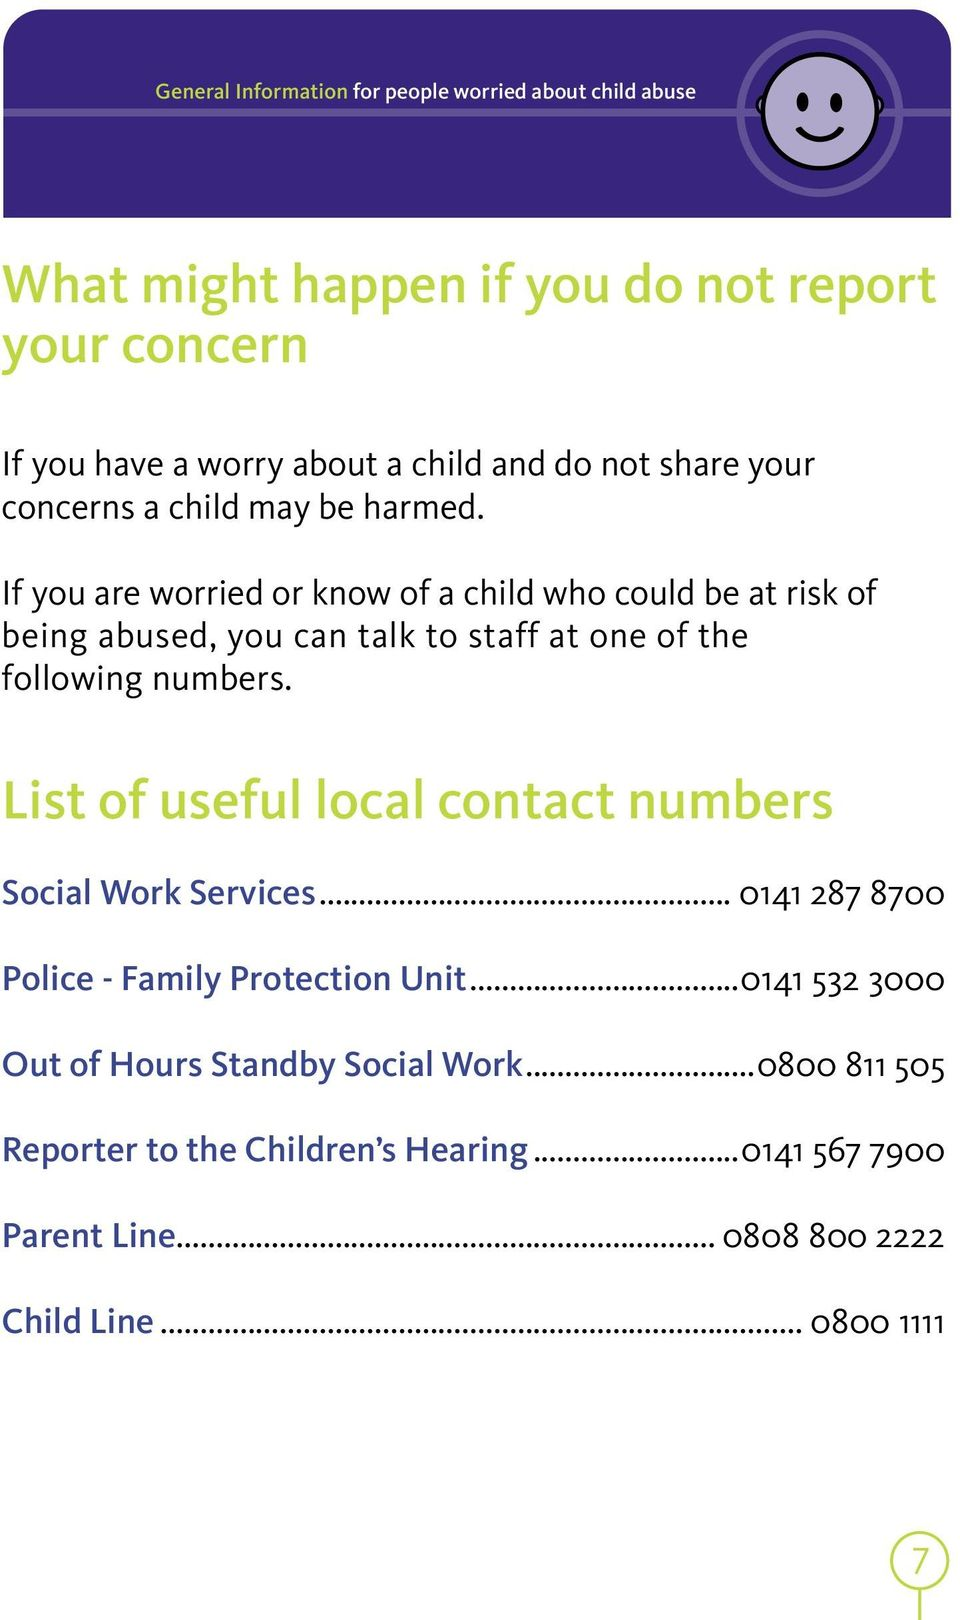 If you are worried or know of a child who could be at risk of being abused, you can talk to staff at one of the following numbers.